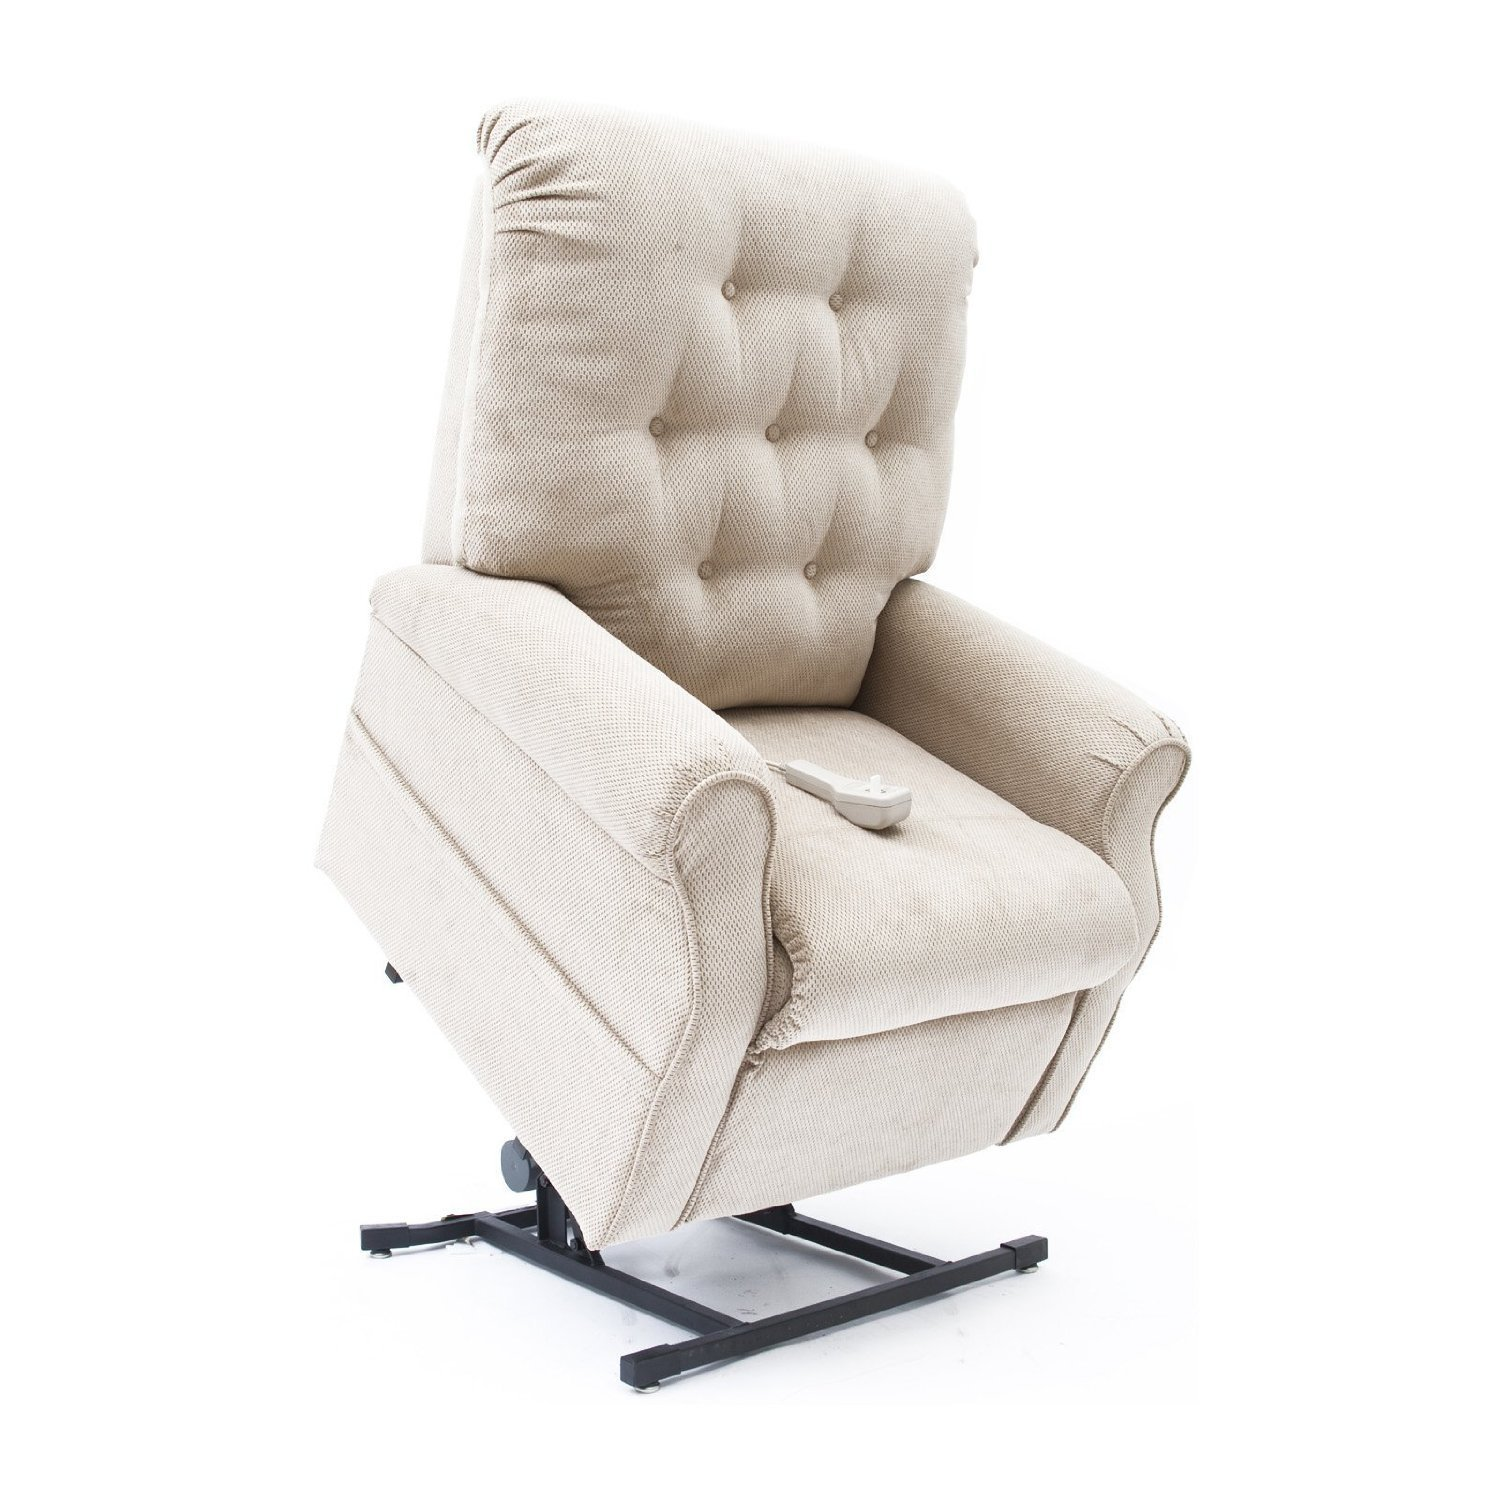 Easy Comfort 3-Position Reclining Power Electric Lift Chair Recliner with Inside Home Delivery and Setup - Fawn Tan Color Fabric